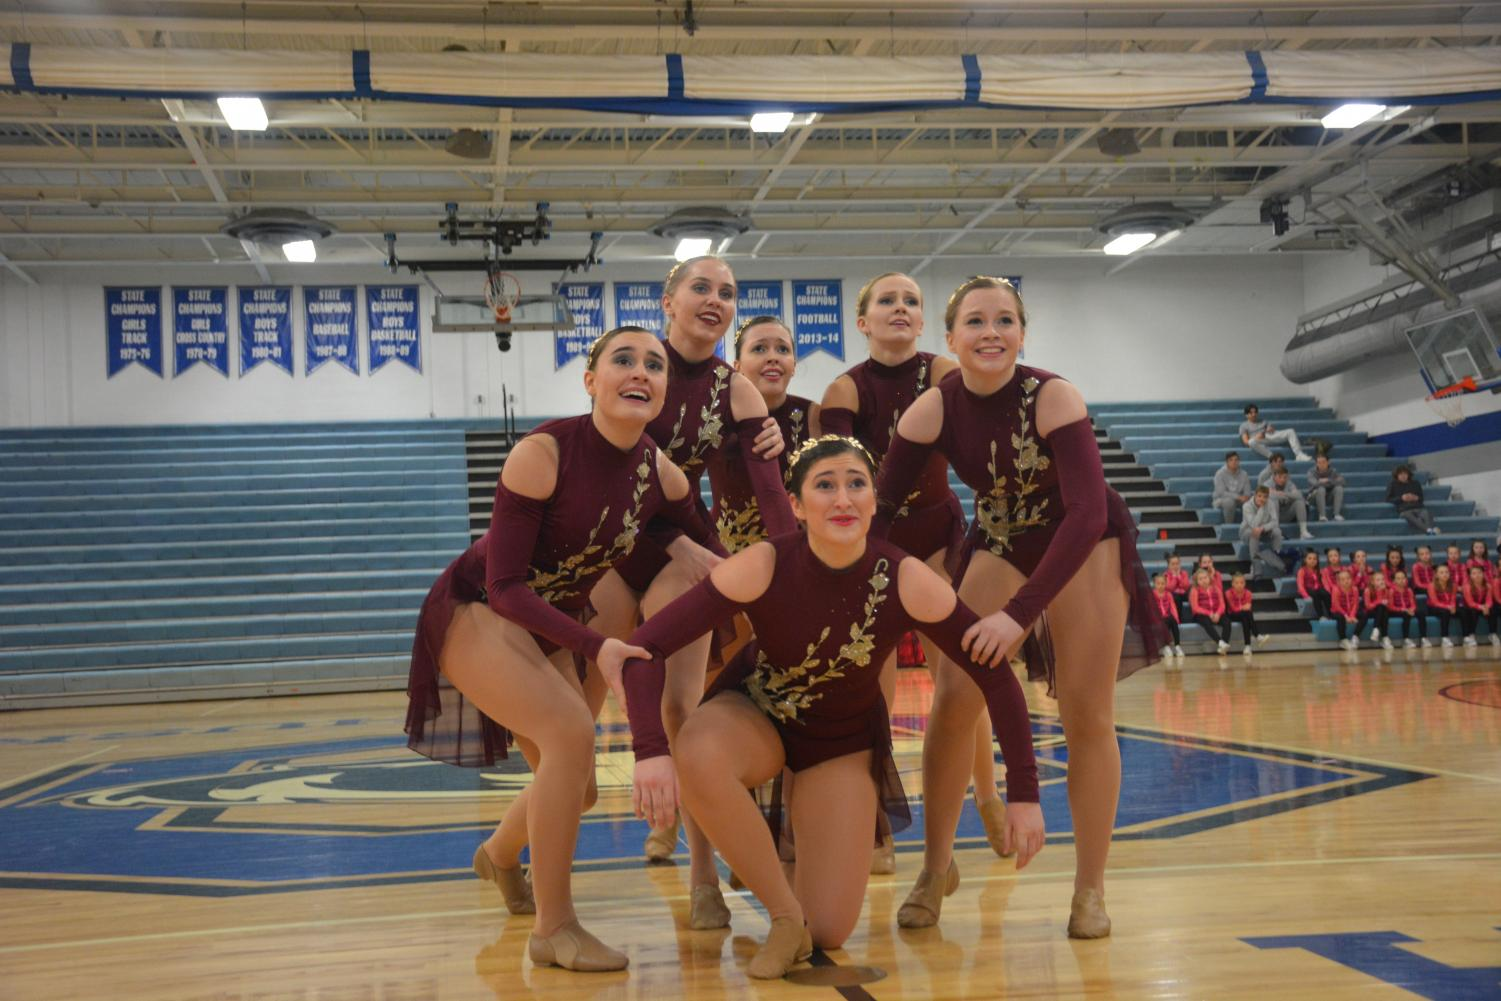 Dance team preforming at the community show.